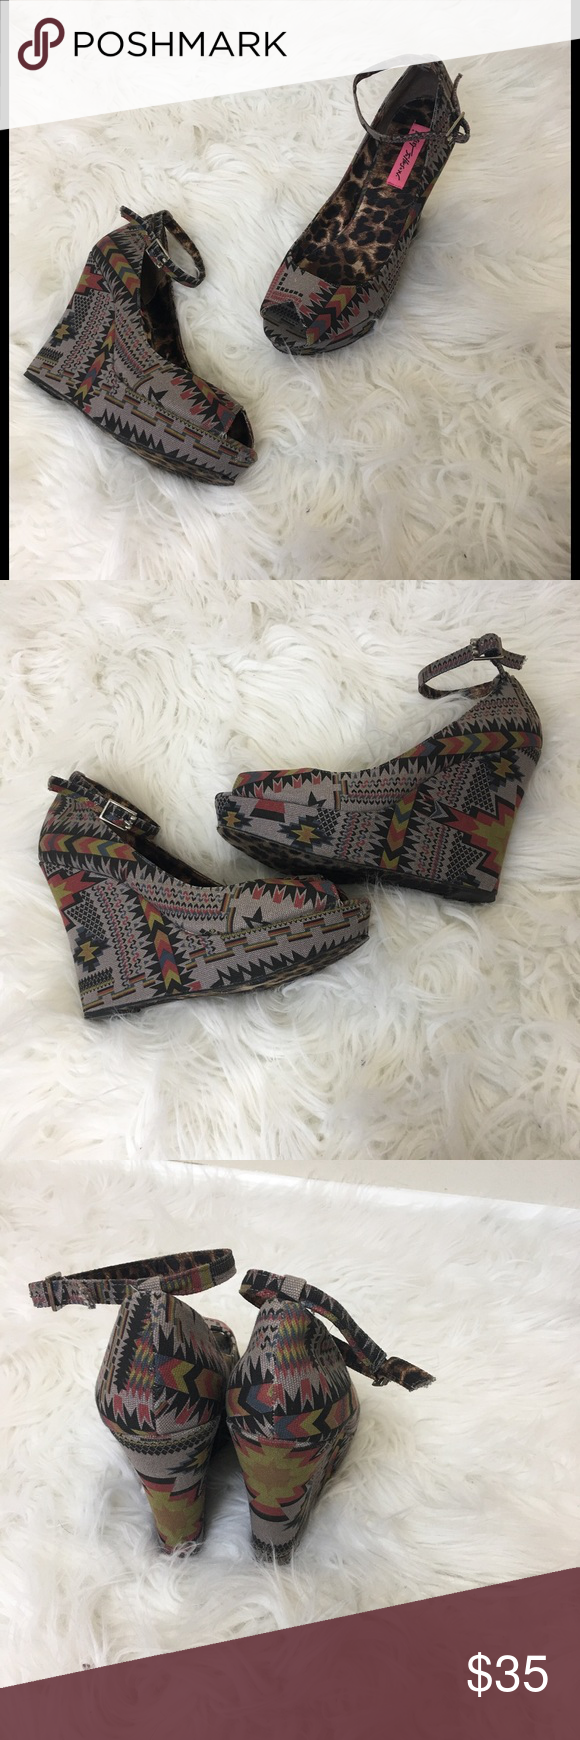 """Betsy Johnson Aztec Wedge Sandal Betsy Johnson multicolor Aztec Wedge. Size 9. Heel height is 5"""" inches. Minor signs of wear around toes. Very good condition. Betsey Johnson Shoes Wedges"""